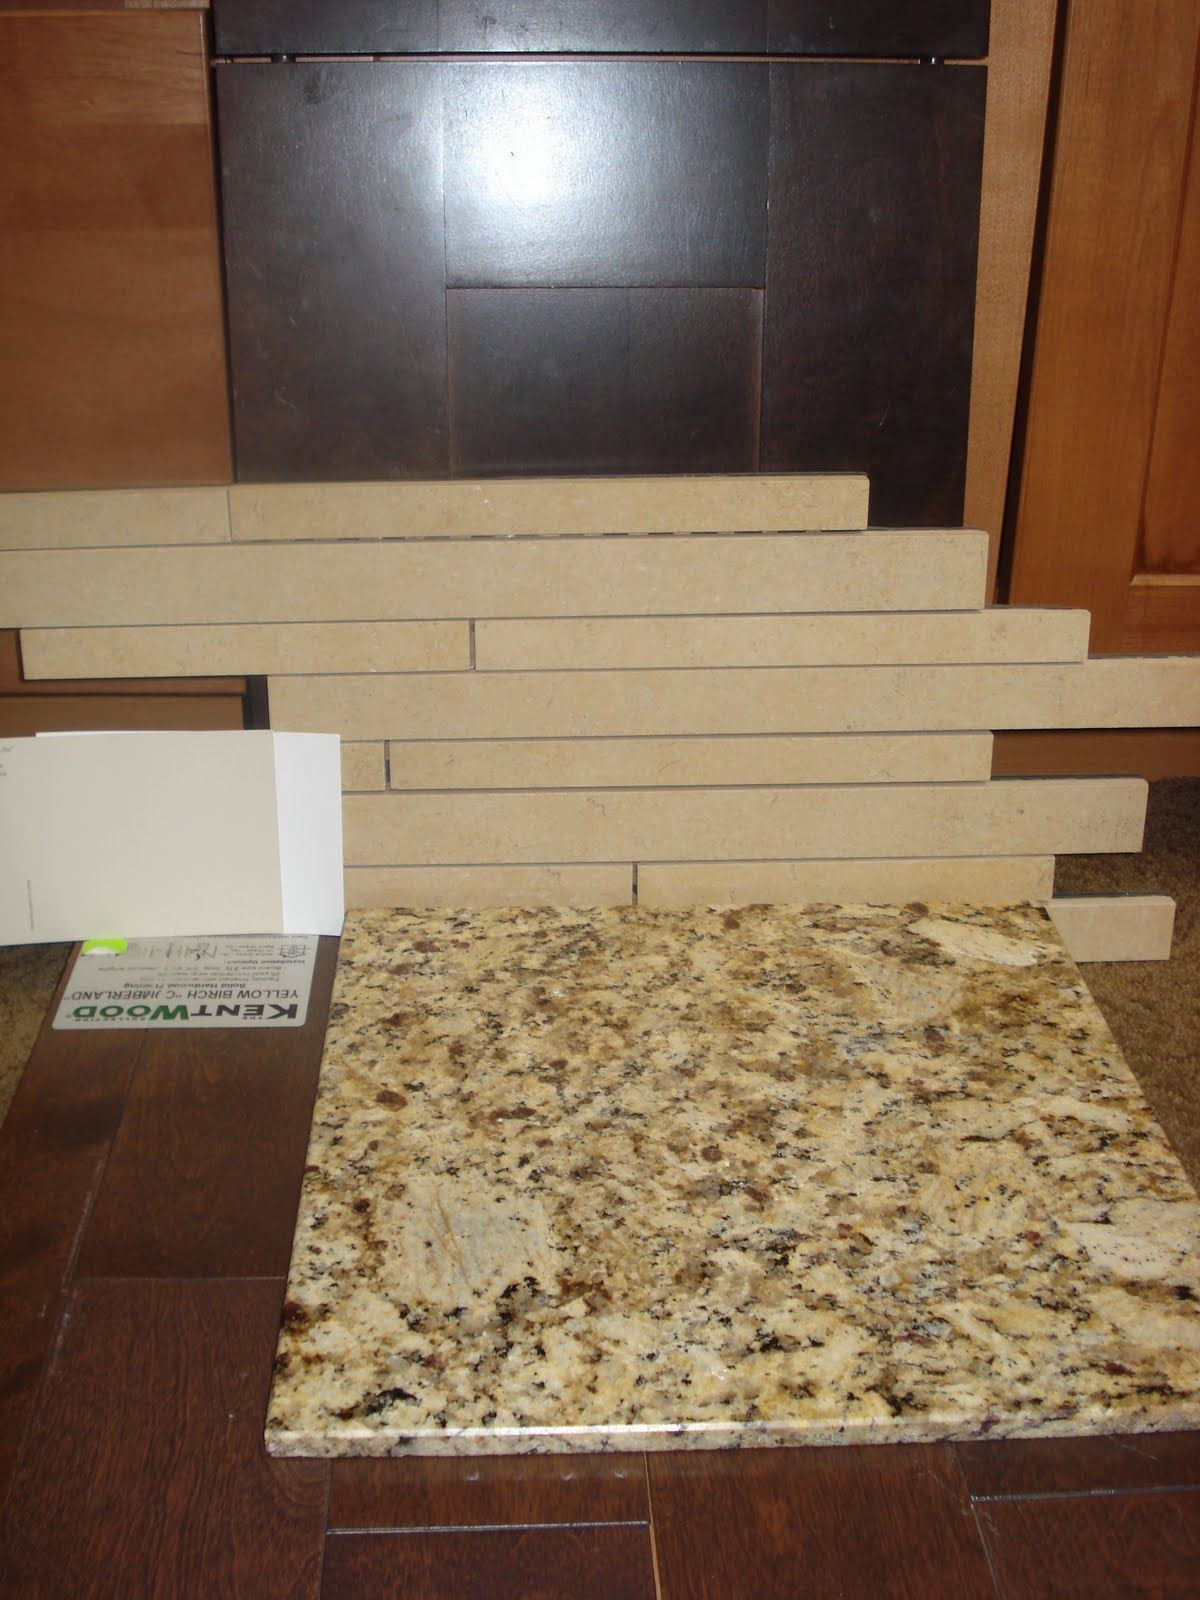 What color granite goes with white subway tile backsplash for Bathroom backsplash